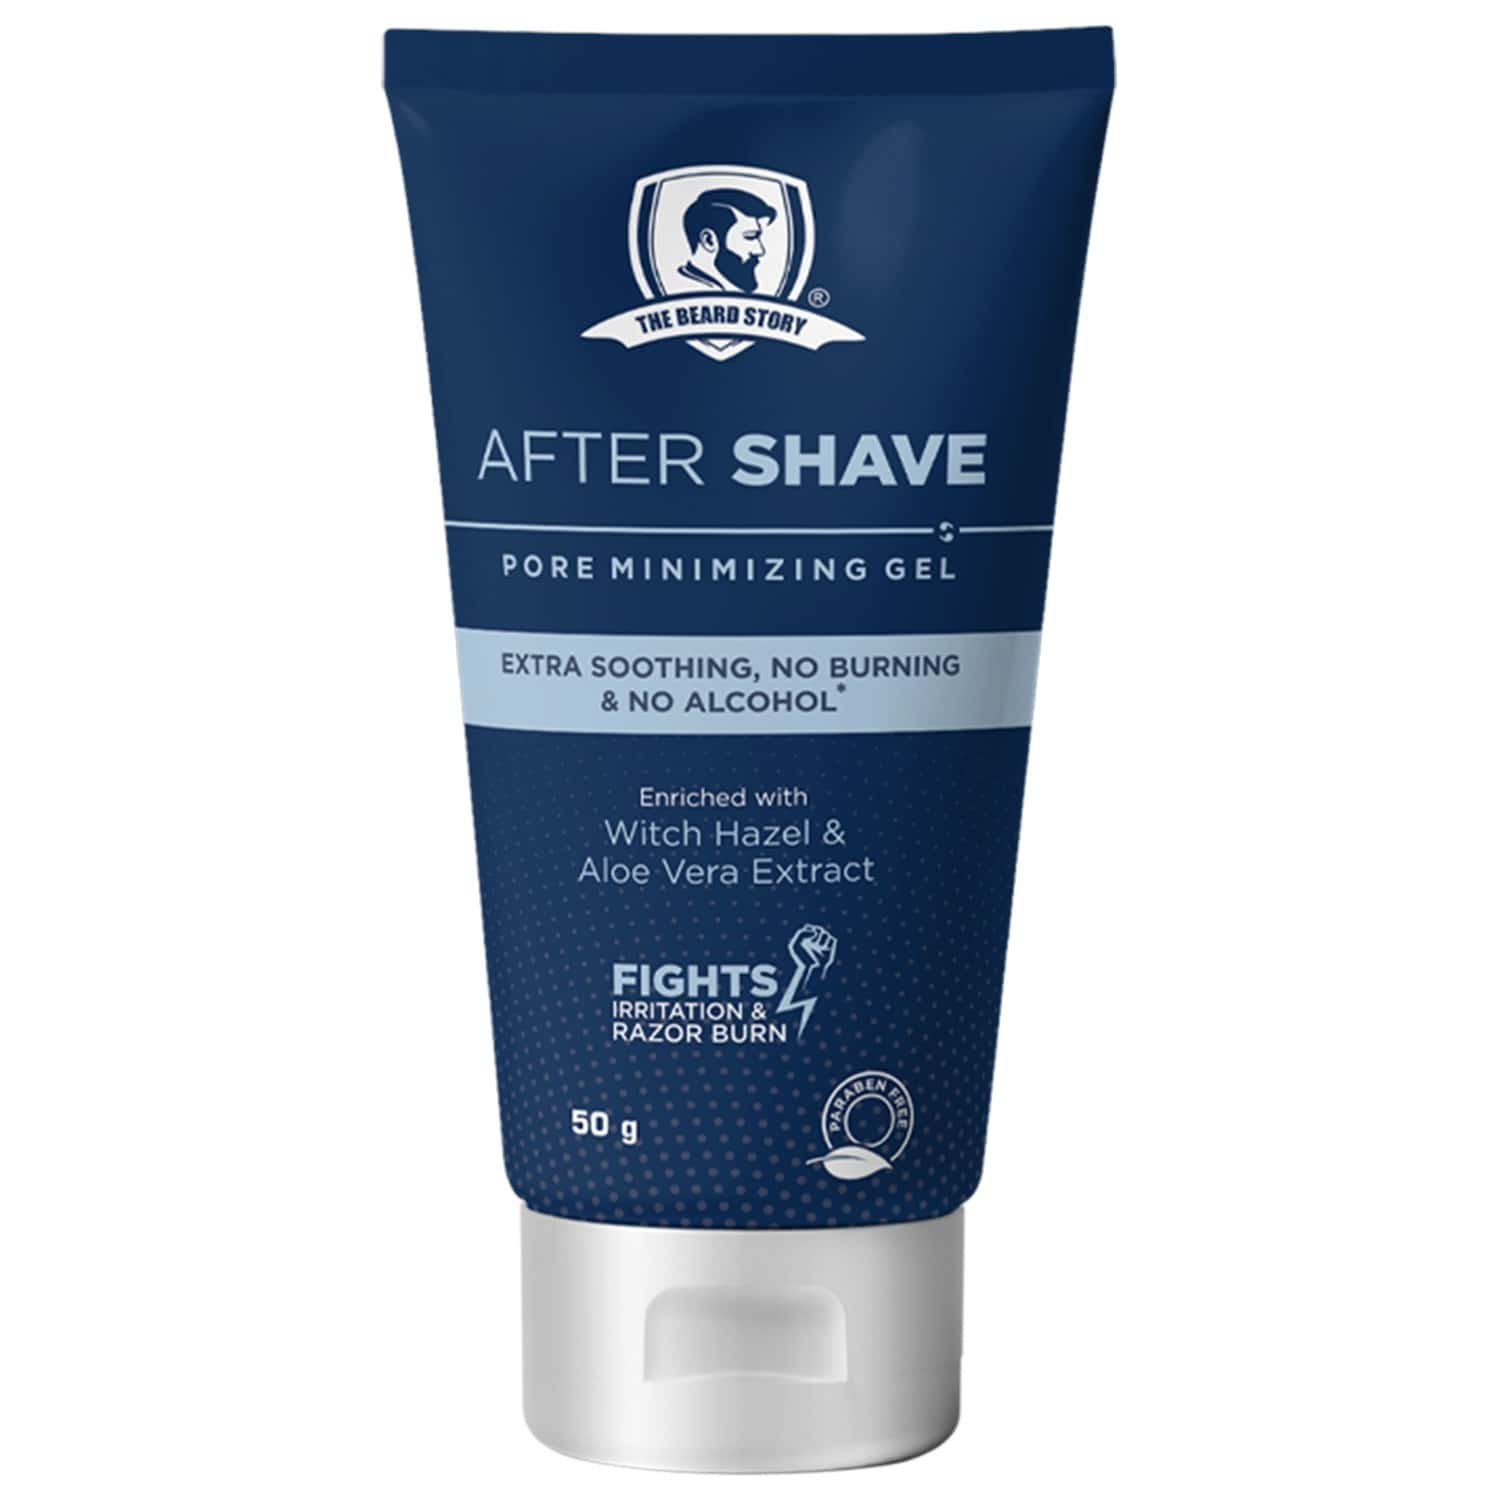 The Beard Story After Shave Pore Minimizing Gel, Extra Soothing , No Burning & No Alcohol - 50 Gm